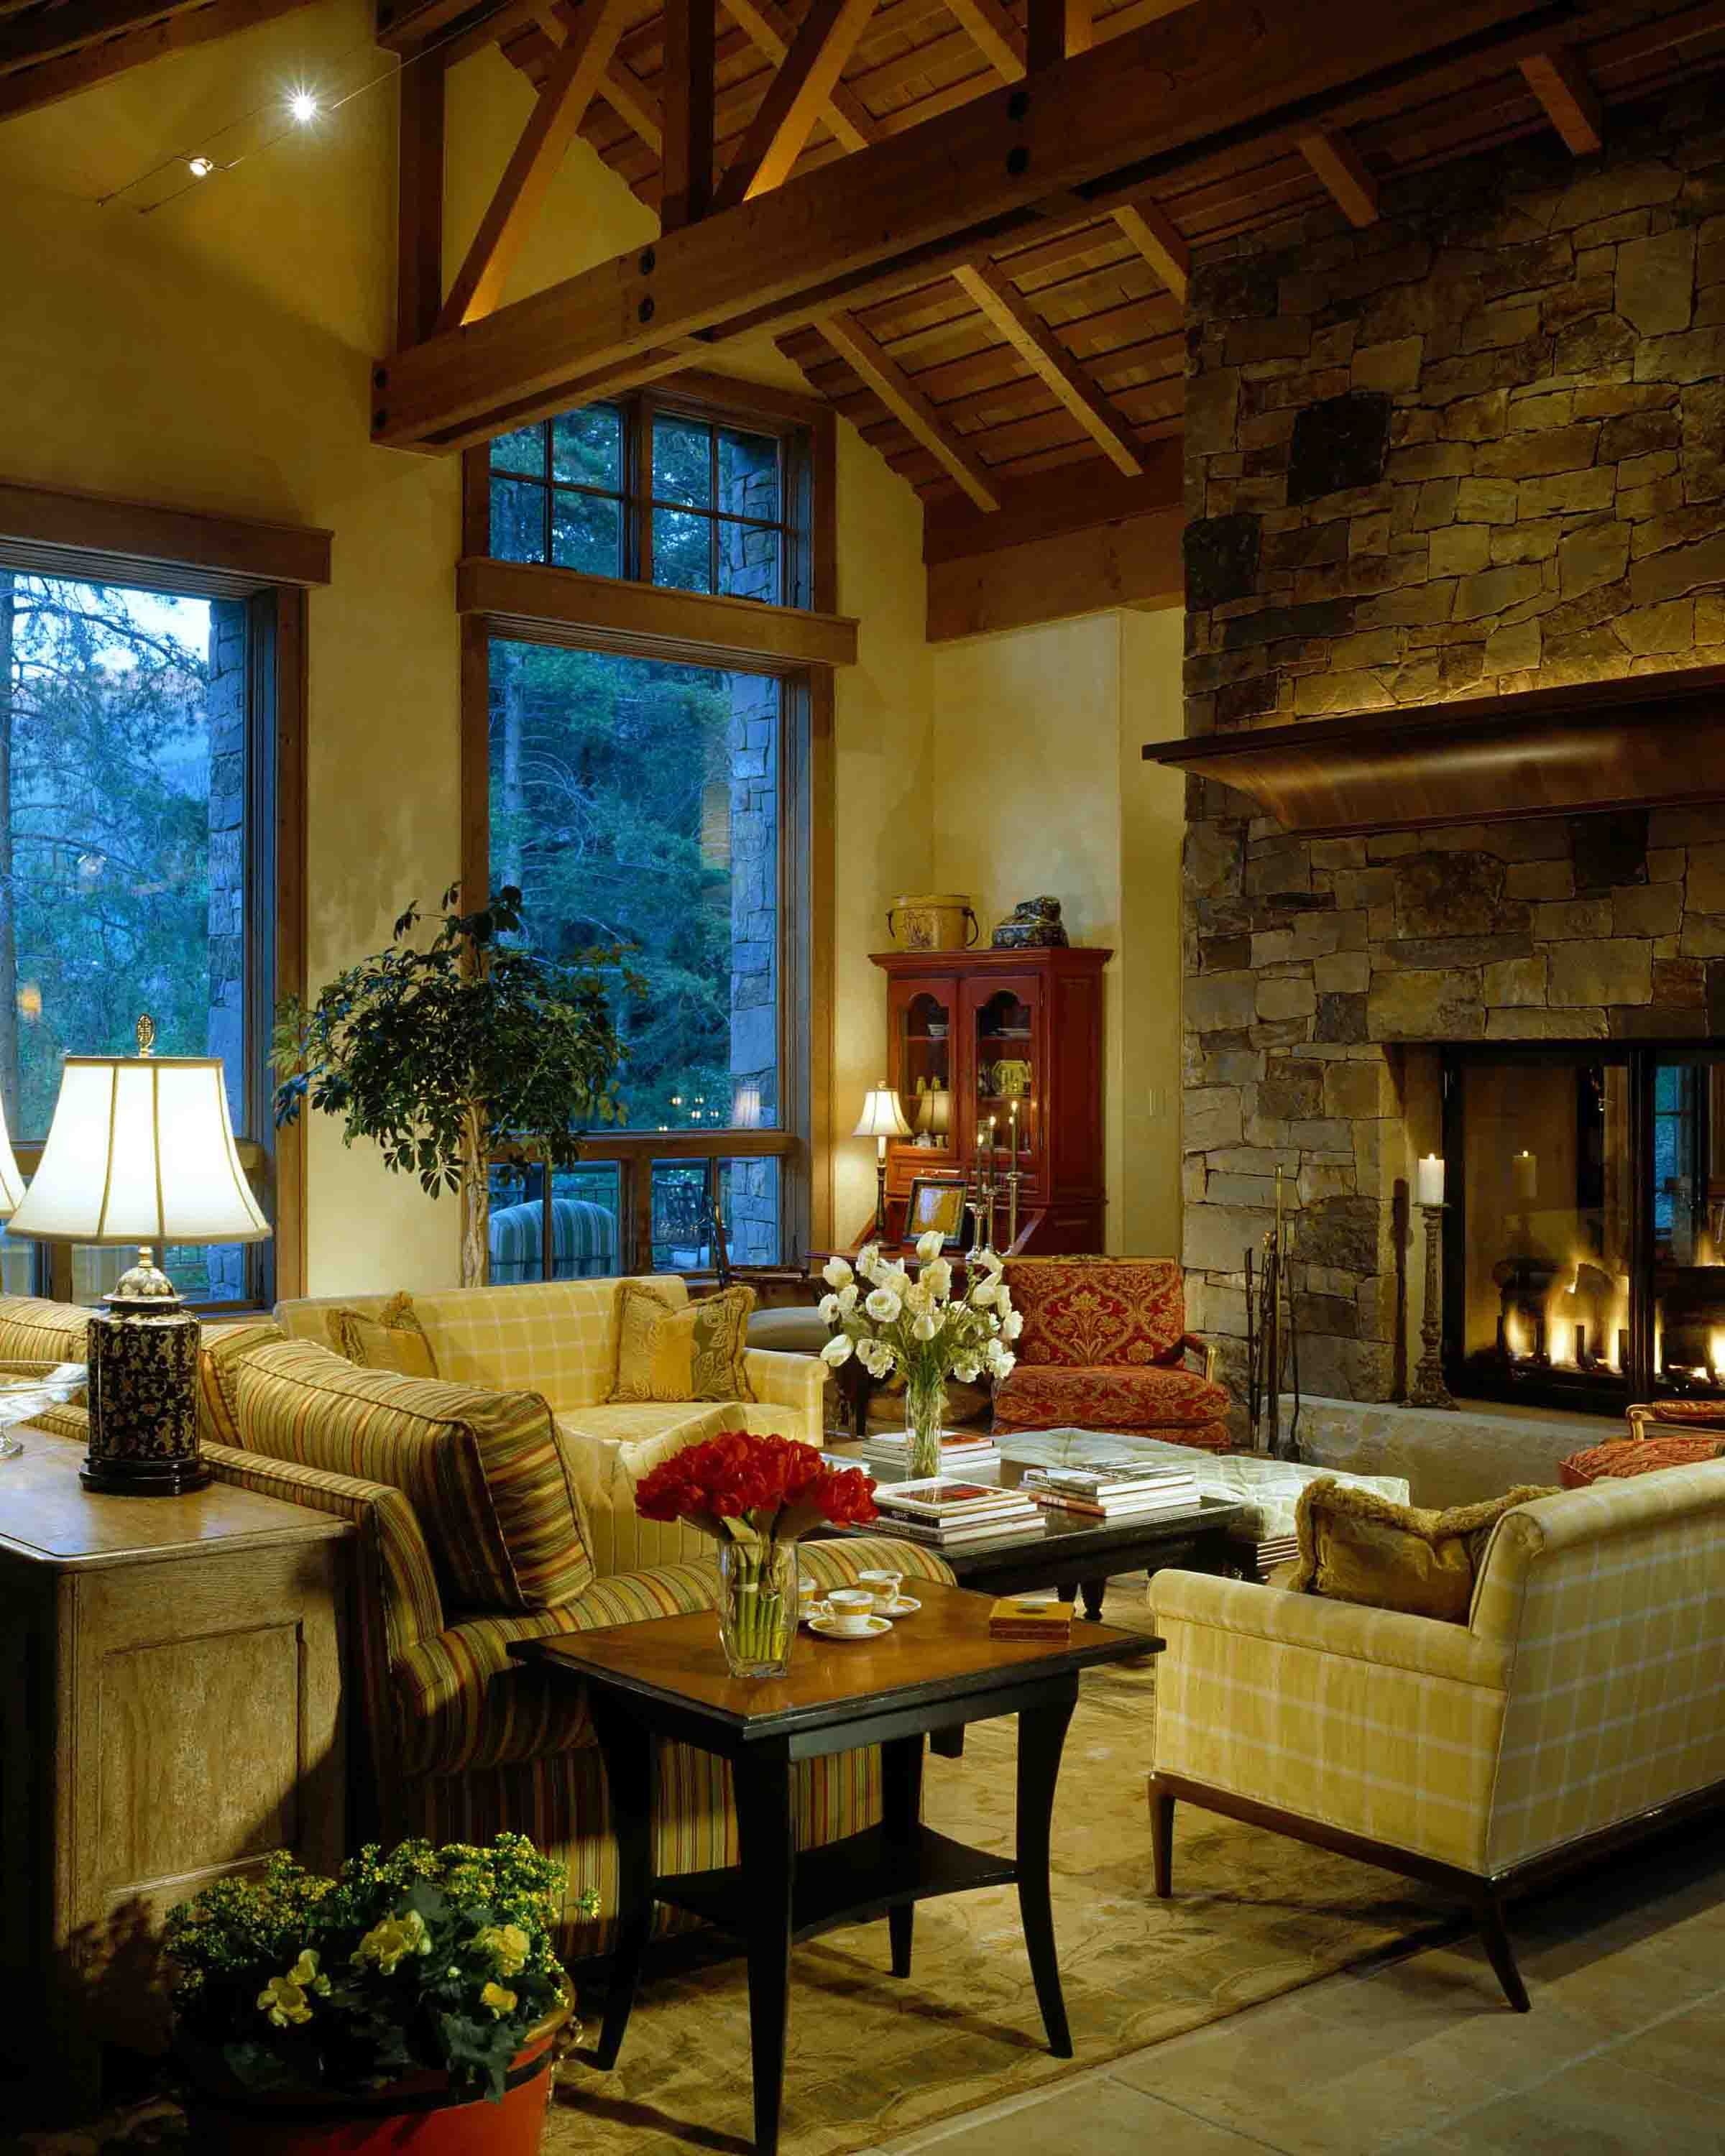 E Unlimited Home Design: Vail,Colorado. I Would Imagine Calla's Home Would Look